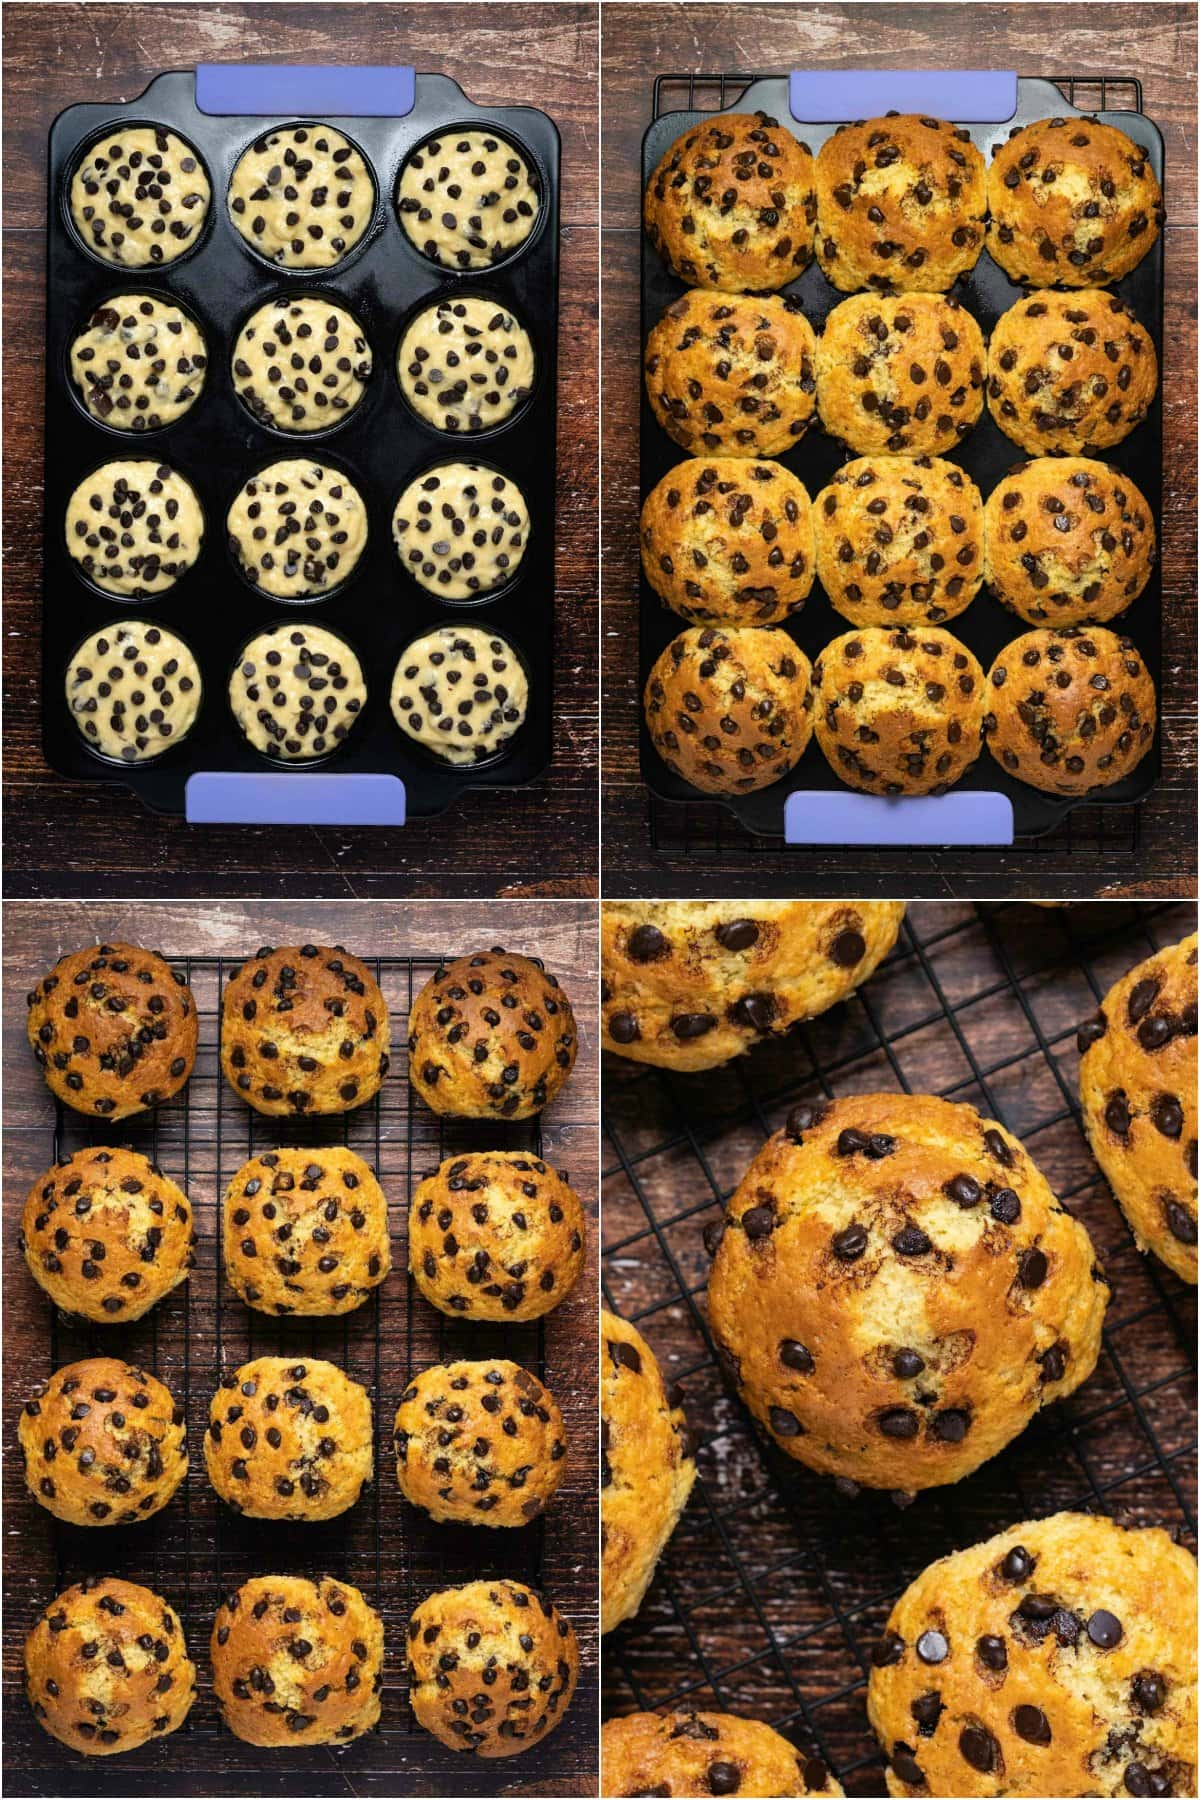 Step by step process photo collage of making chocolate chip muffins.